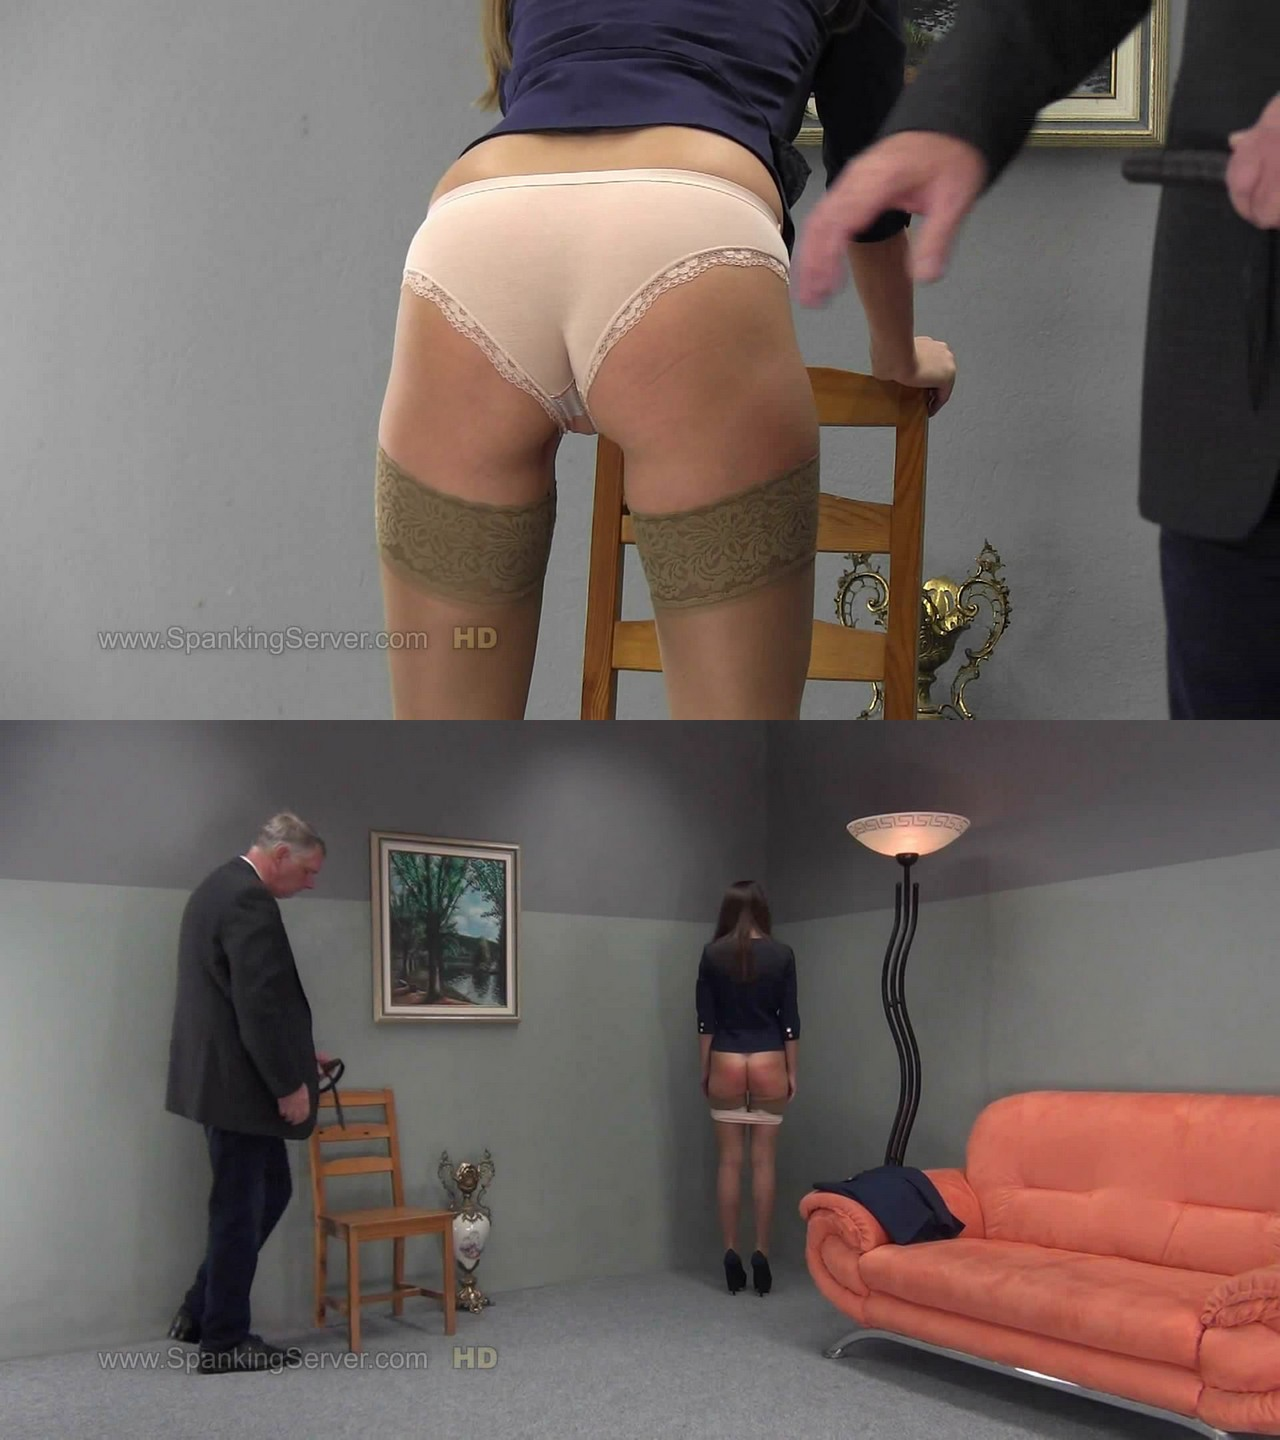 Spanking Server – MP4/Full HD – Tyron